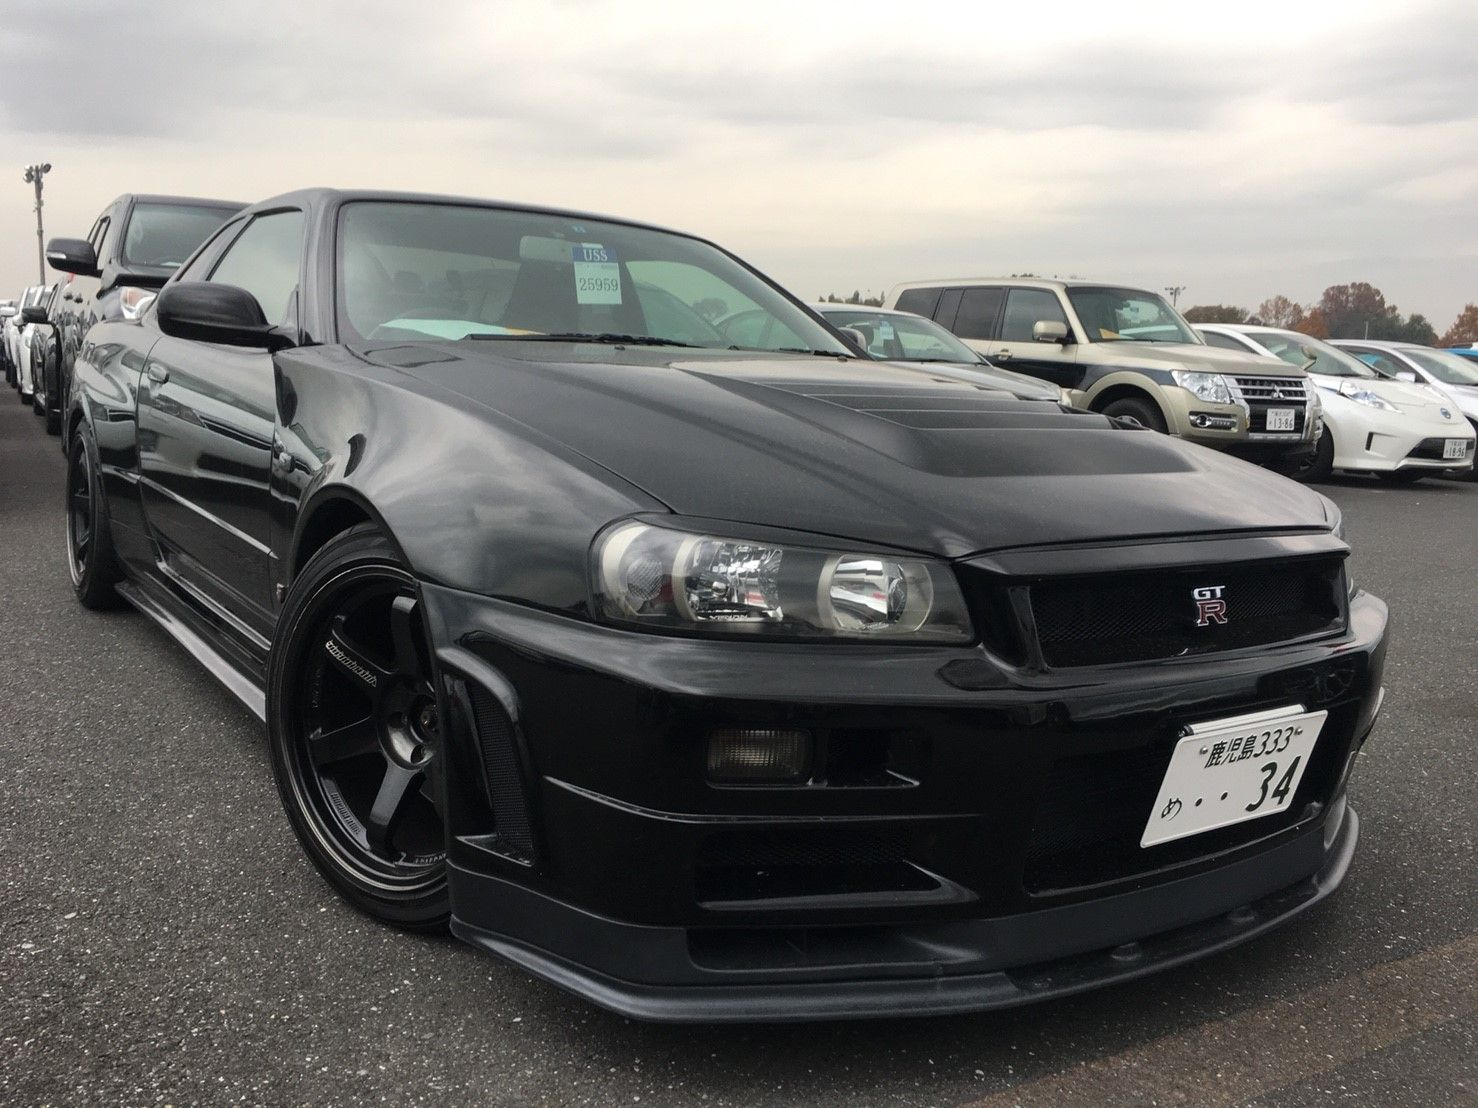 1999 nissan skyline r34 gt r vspec prestige motorsport. Black Bedroom Furniture Sets. Home Design Ideas